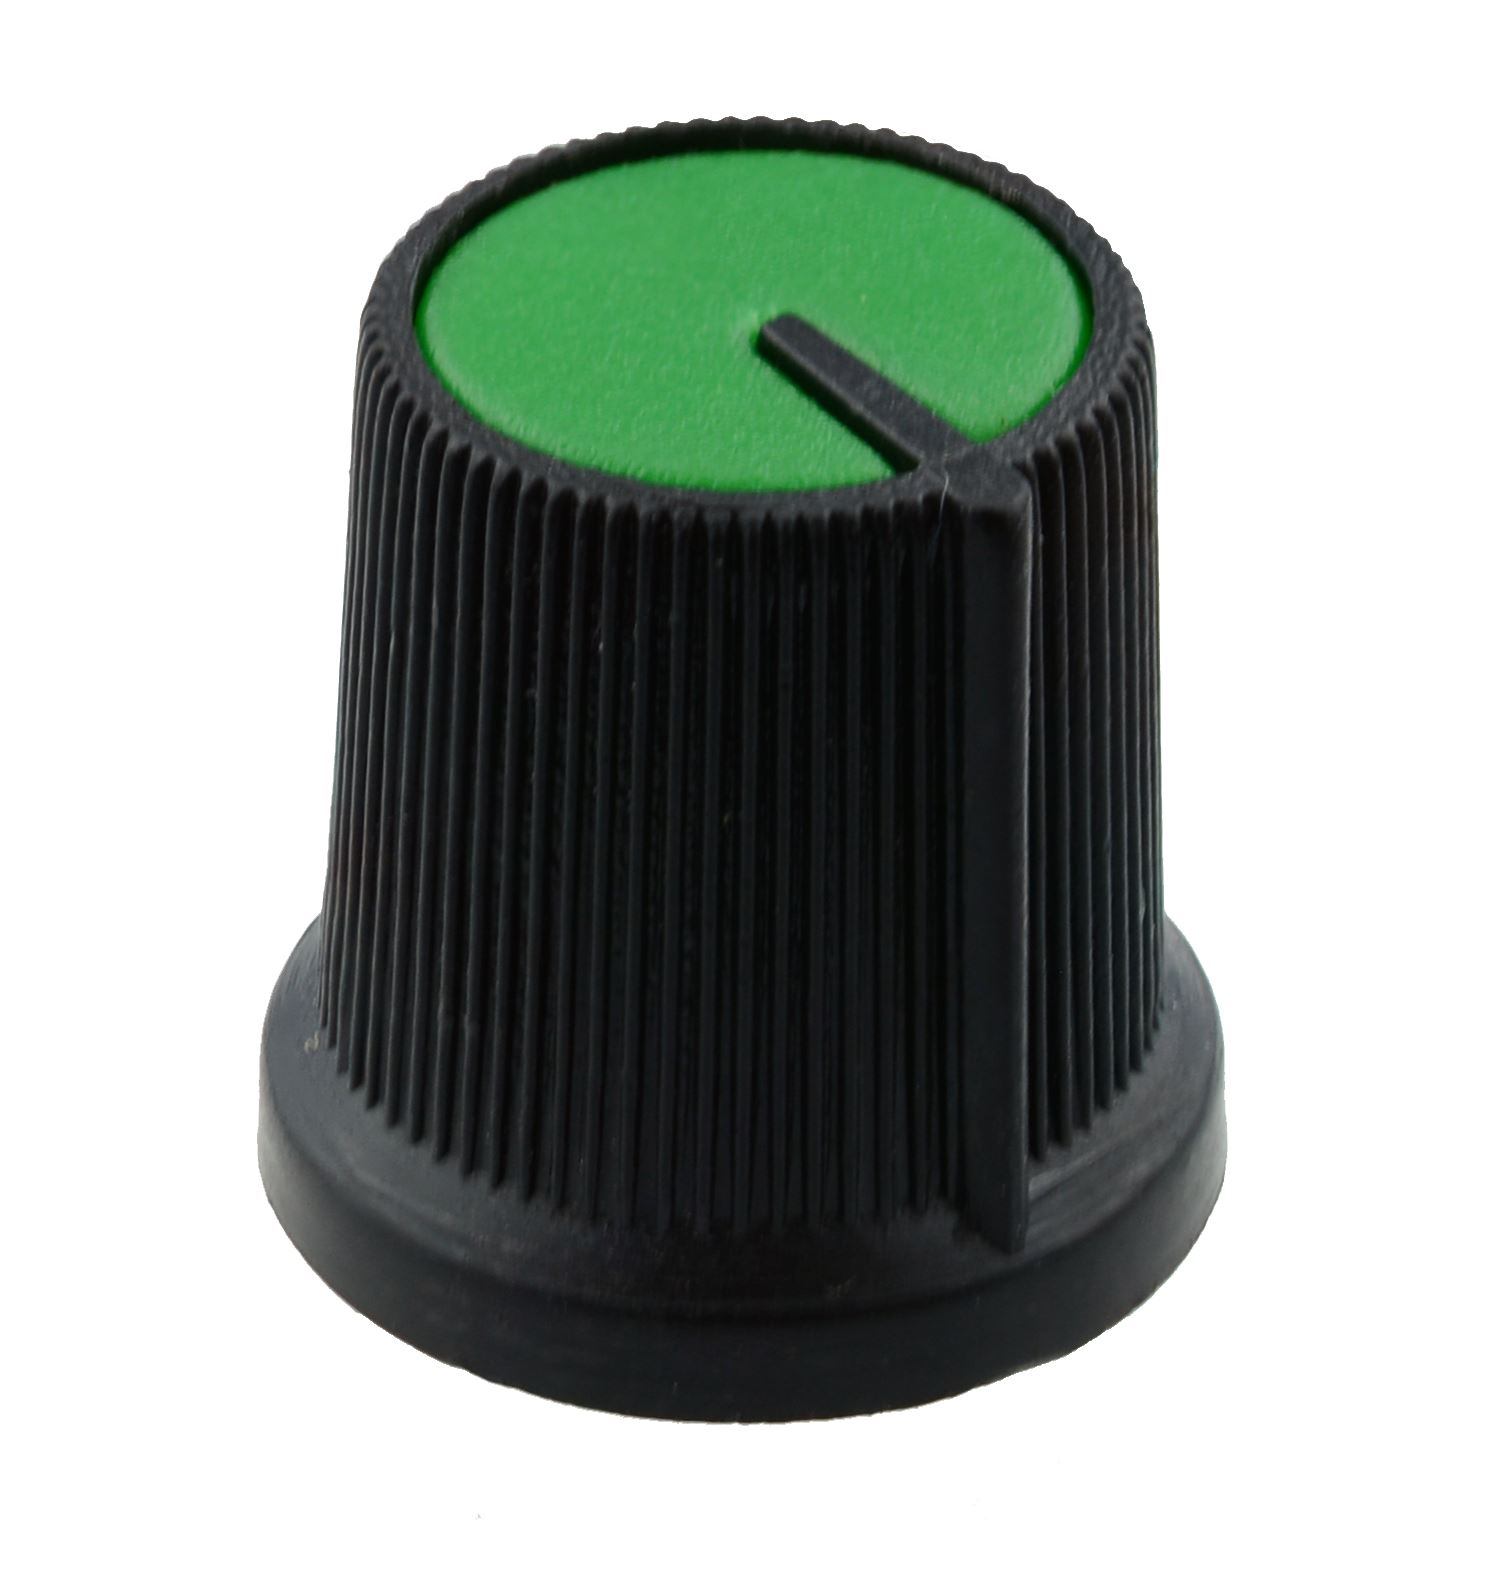 Green 6mm Pointer Knob